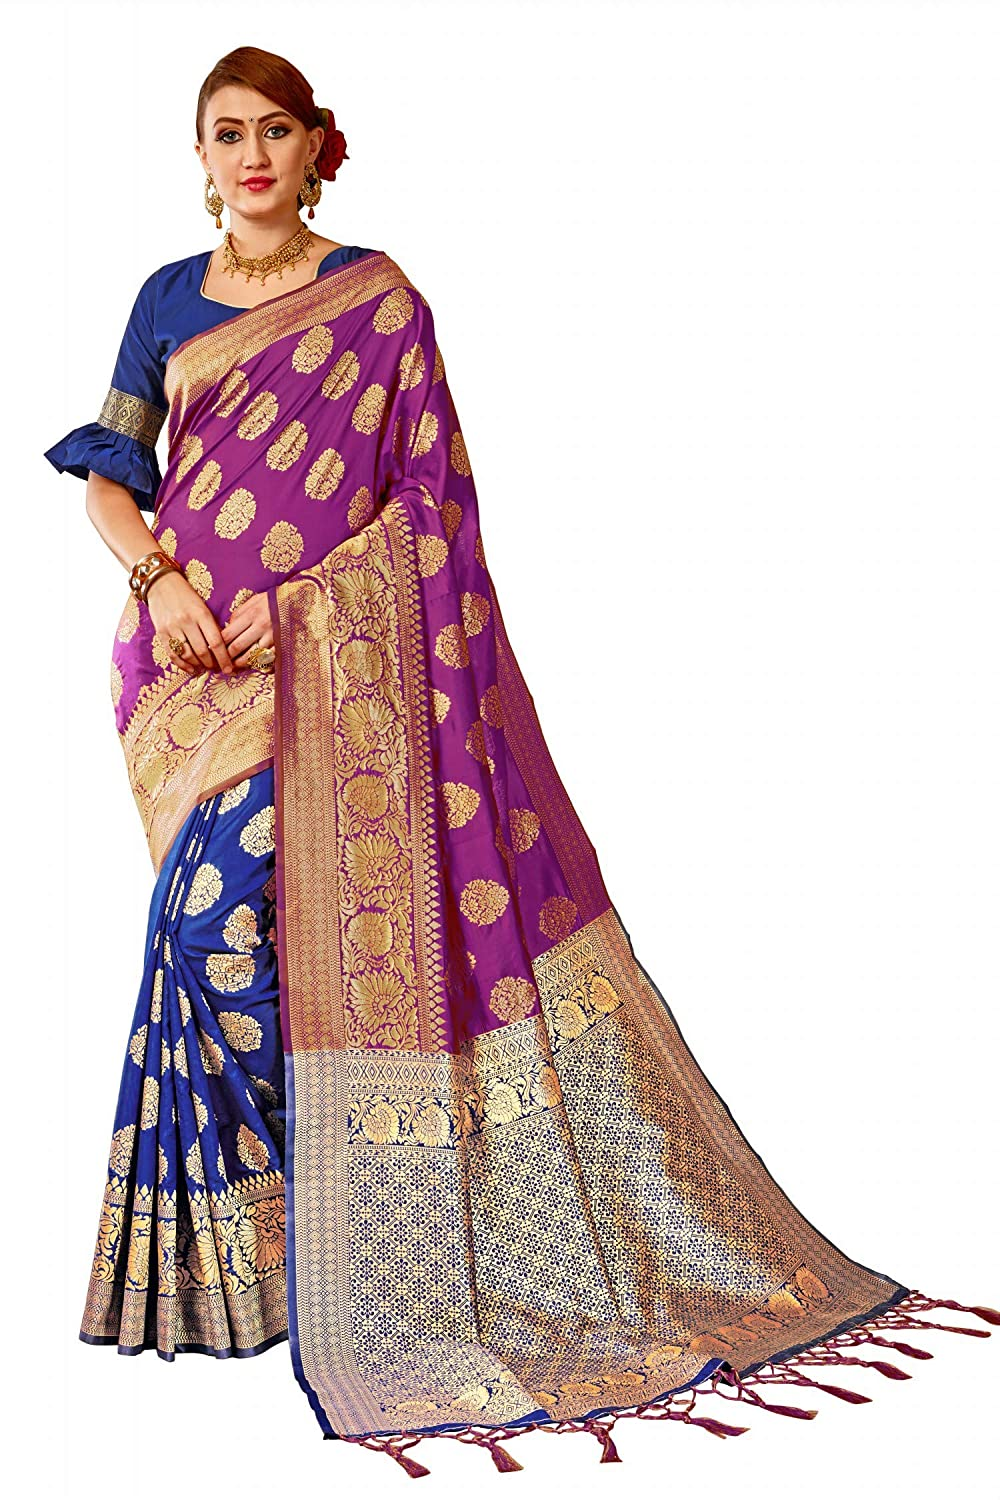 be8452ca6a710c Bigben Textile Women s Navy Blue Purple Woven Banarasi Silk Saree With  Blouse Piece  Amazon.in  Clothing   Accessories